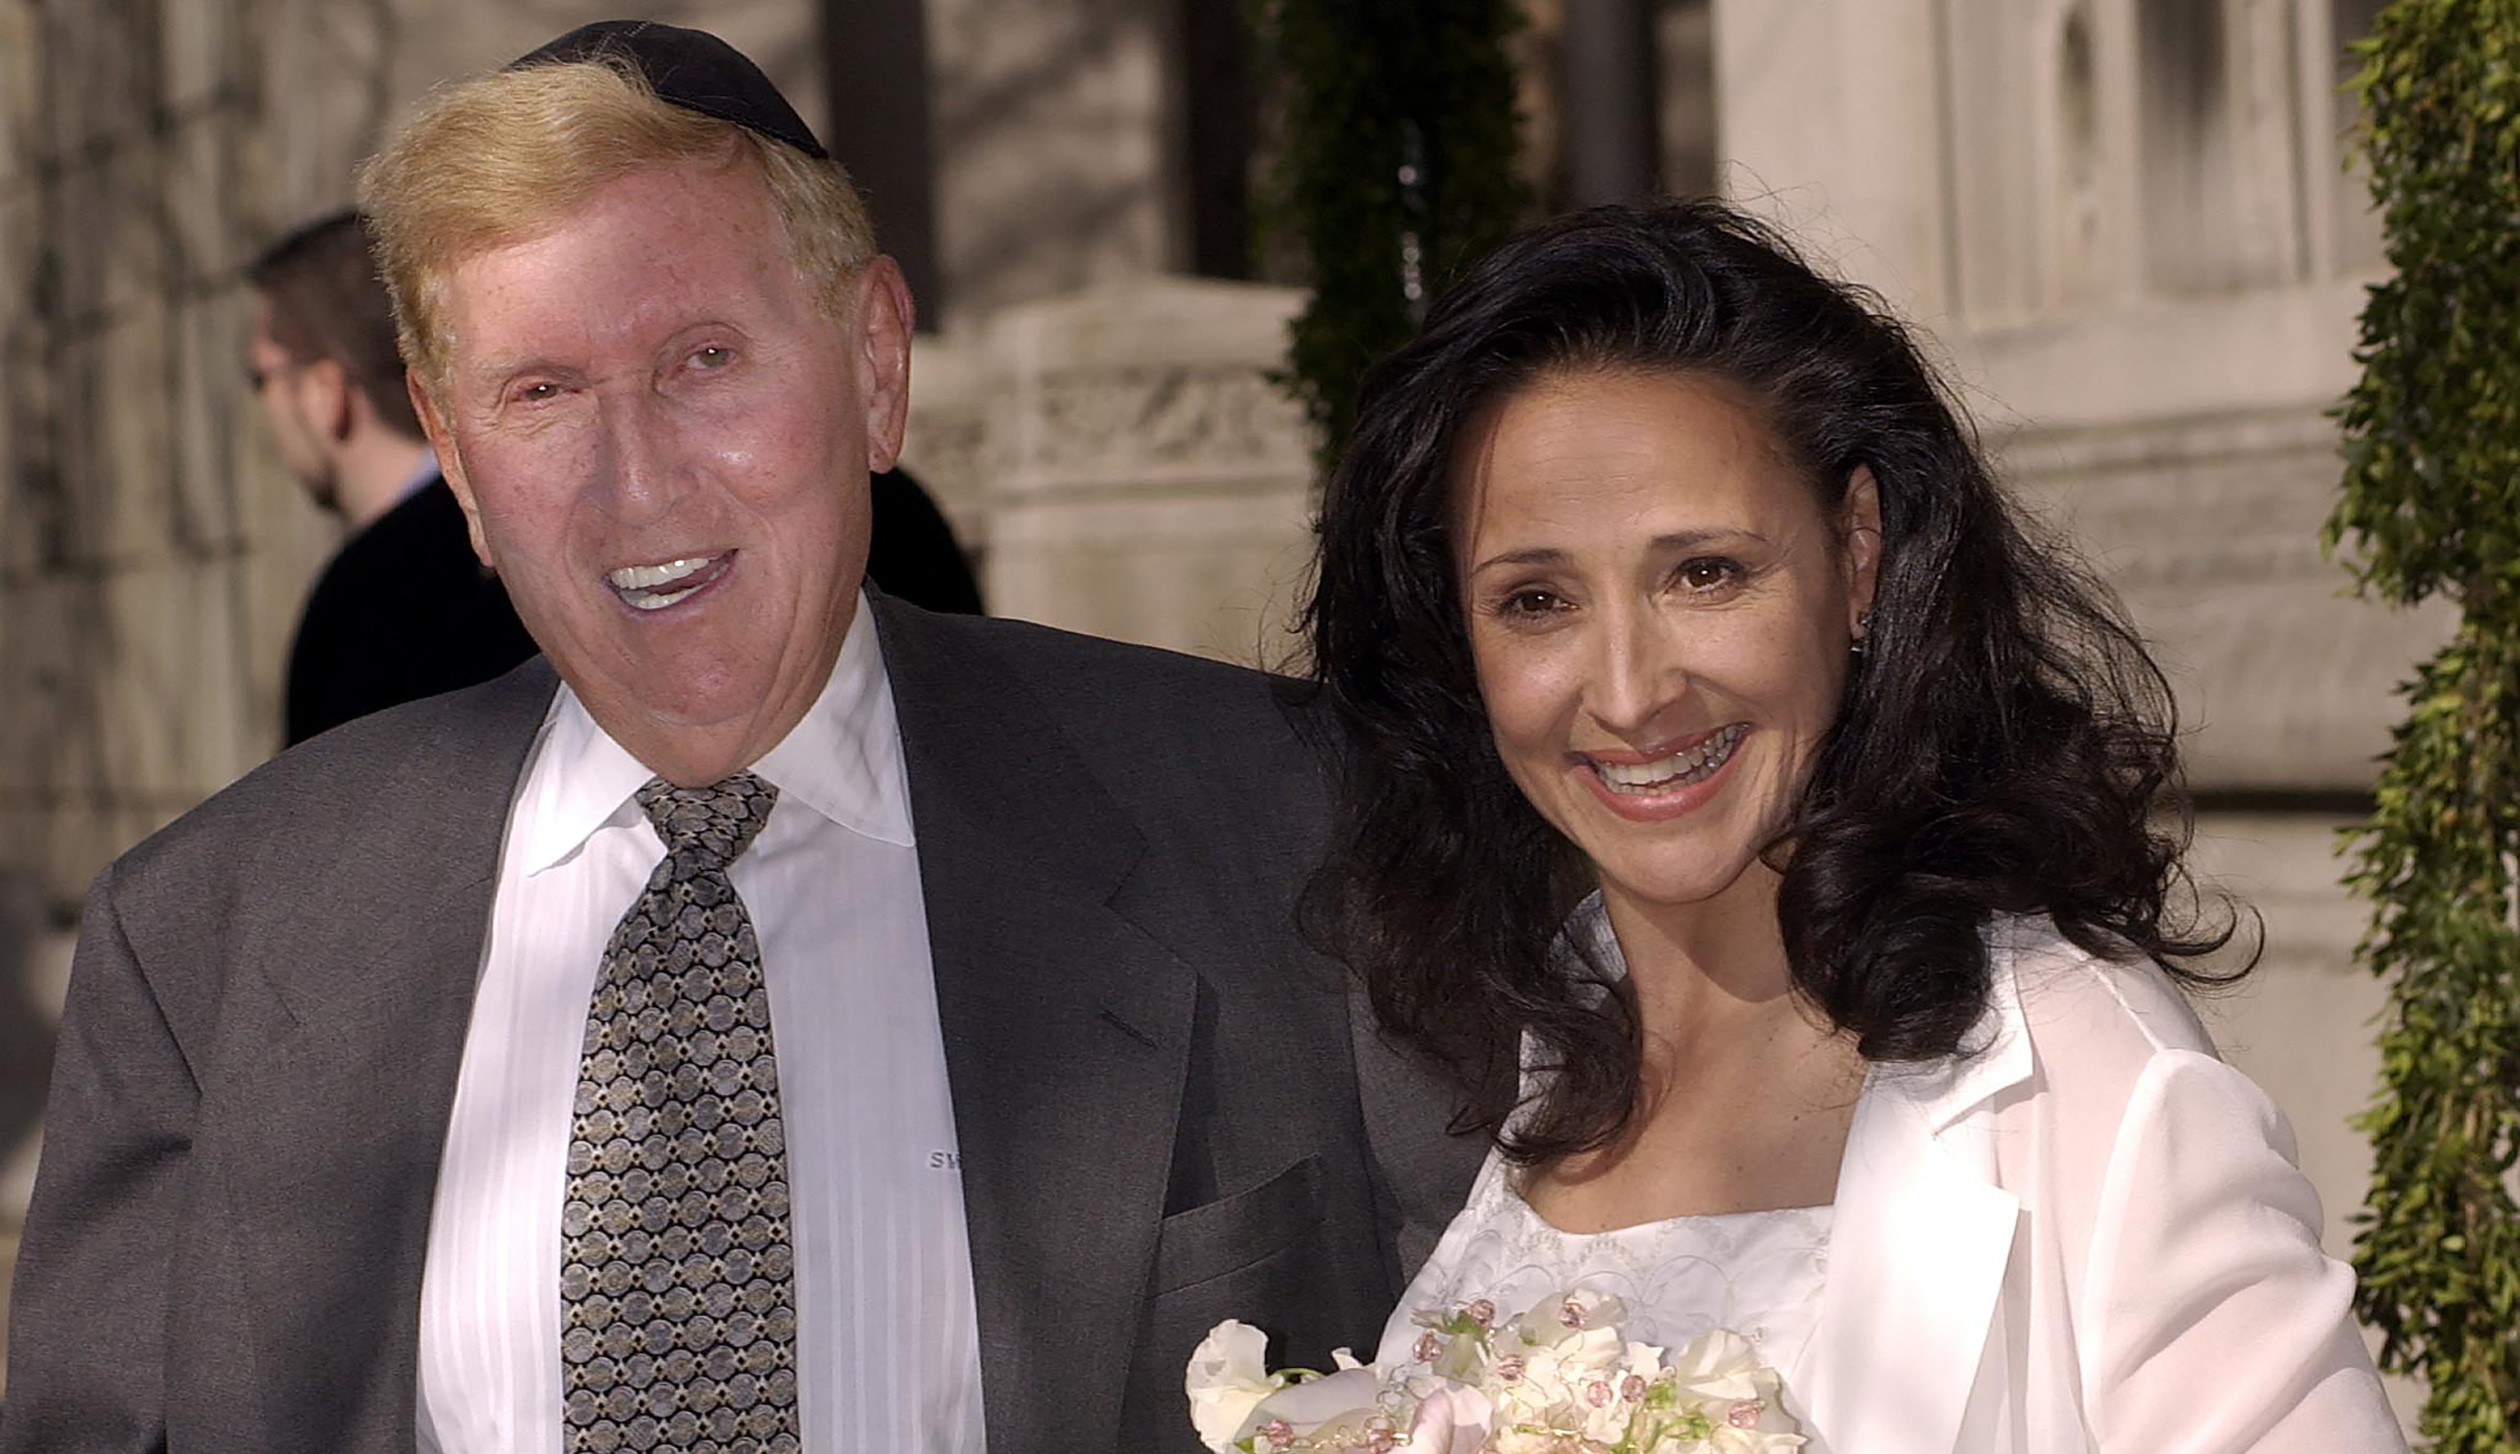 SUMNER REDSTONE AND PAULA FORTUNATO LEAVE NEW YORK TEMPLE AFTERWEDDING.